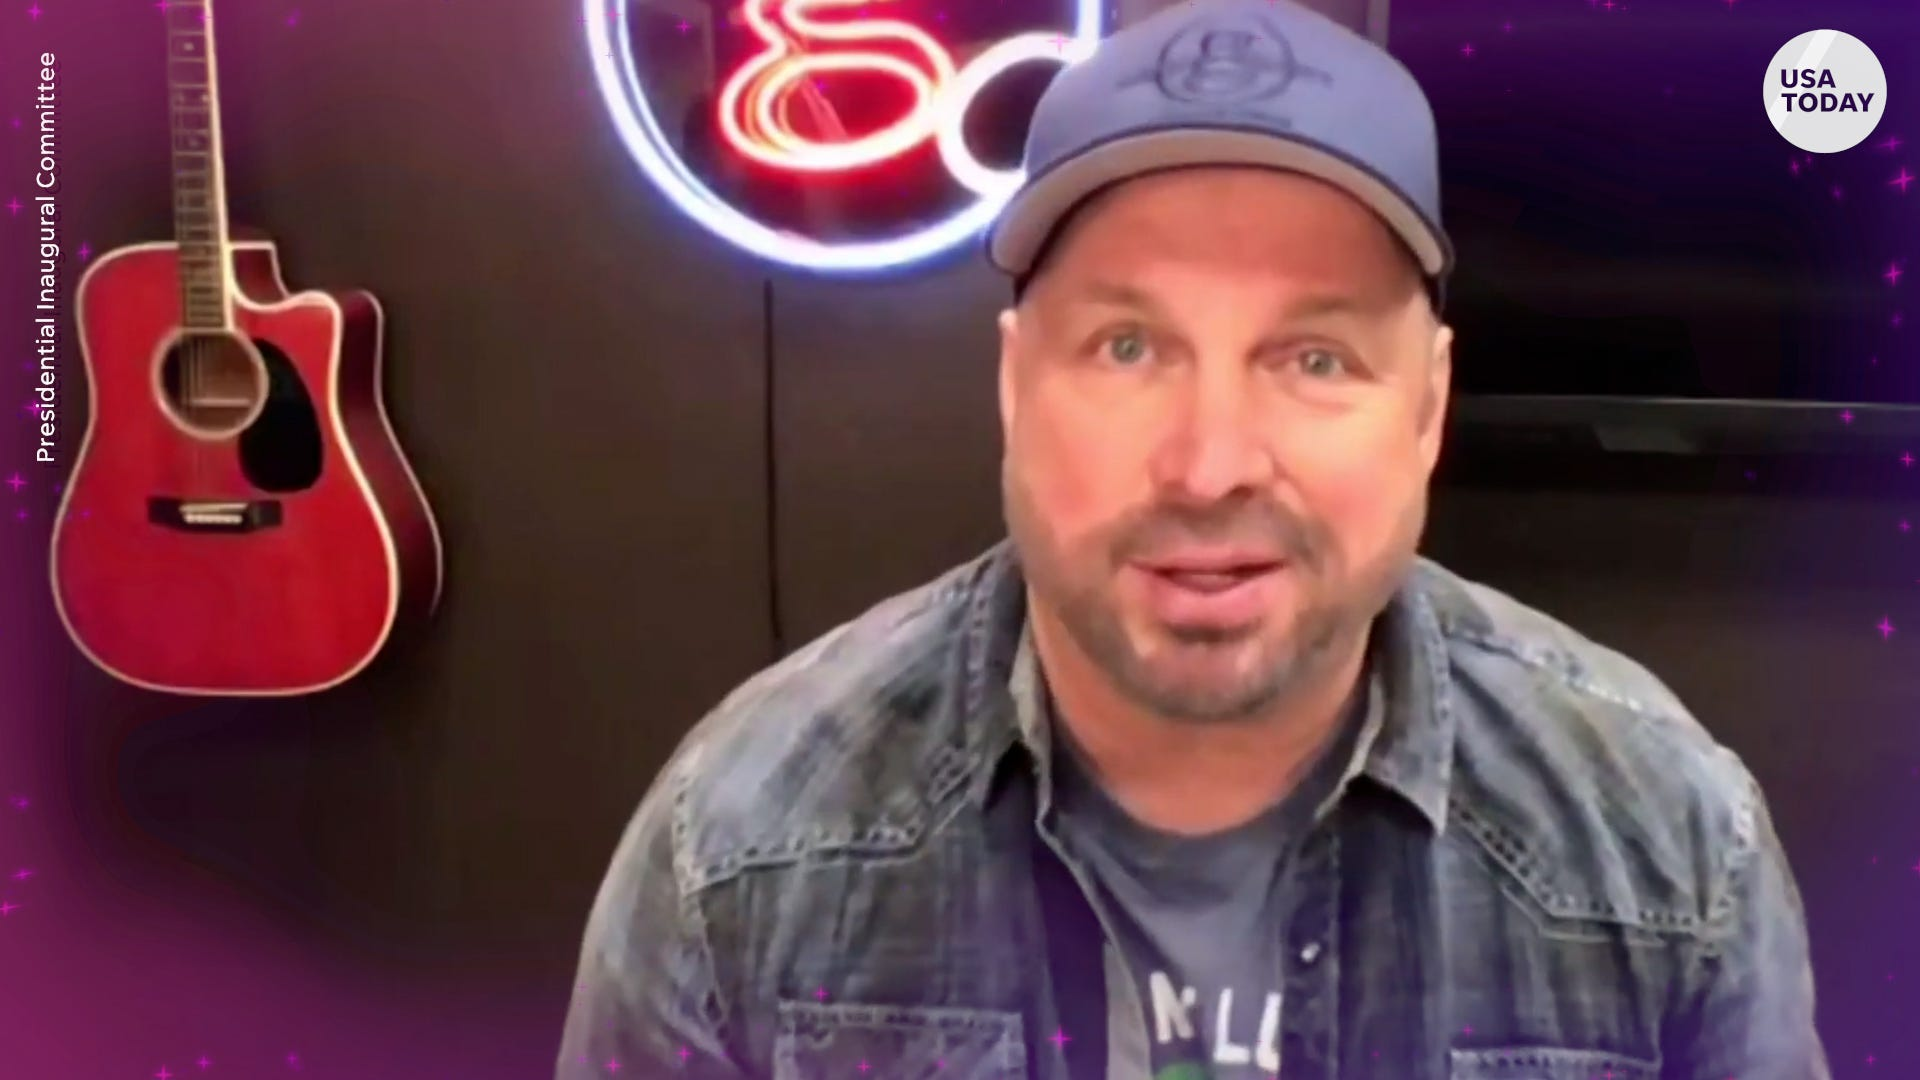 Garth Brooks added to inauguration lineup that includes Lady Gaga, Jennifer Lopez